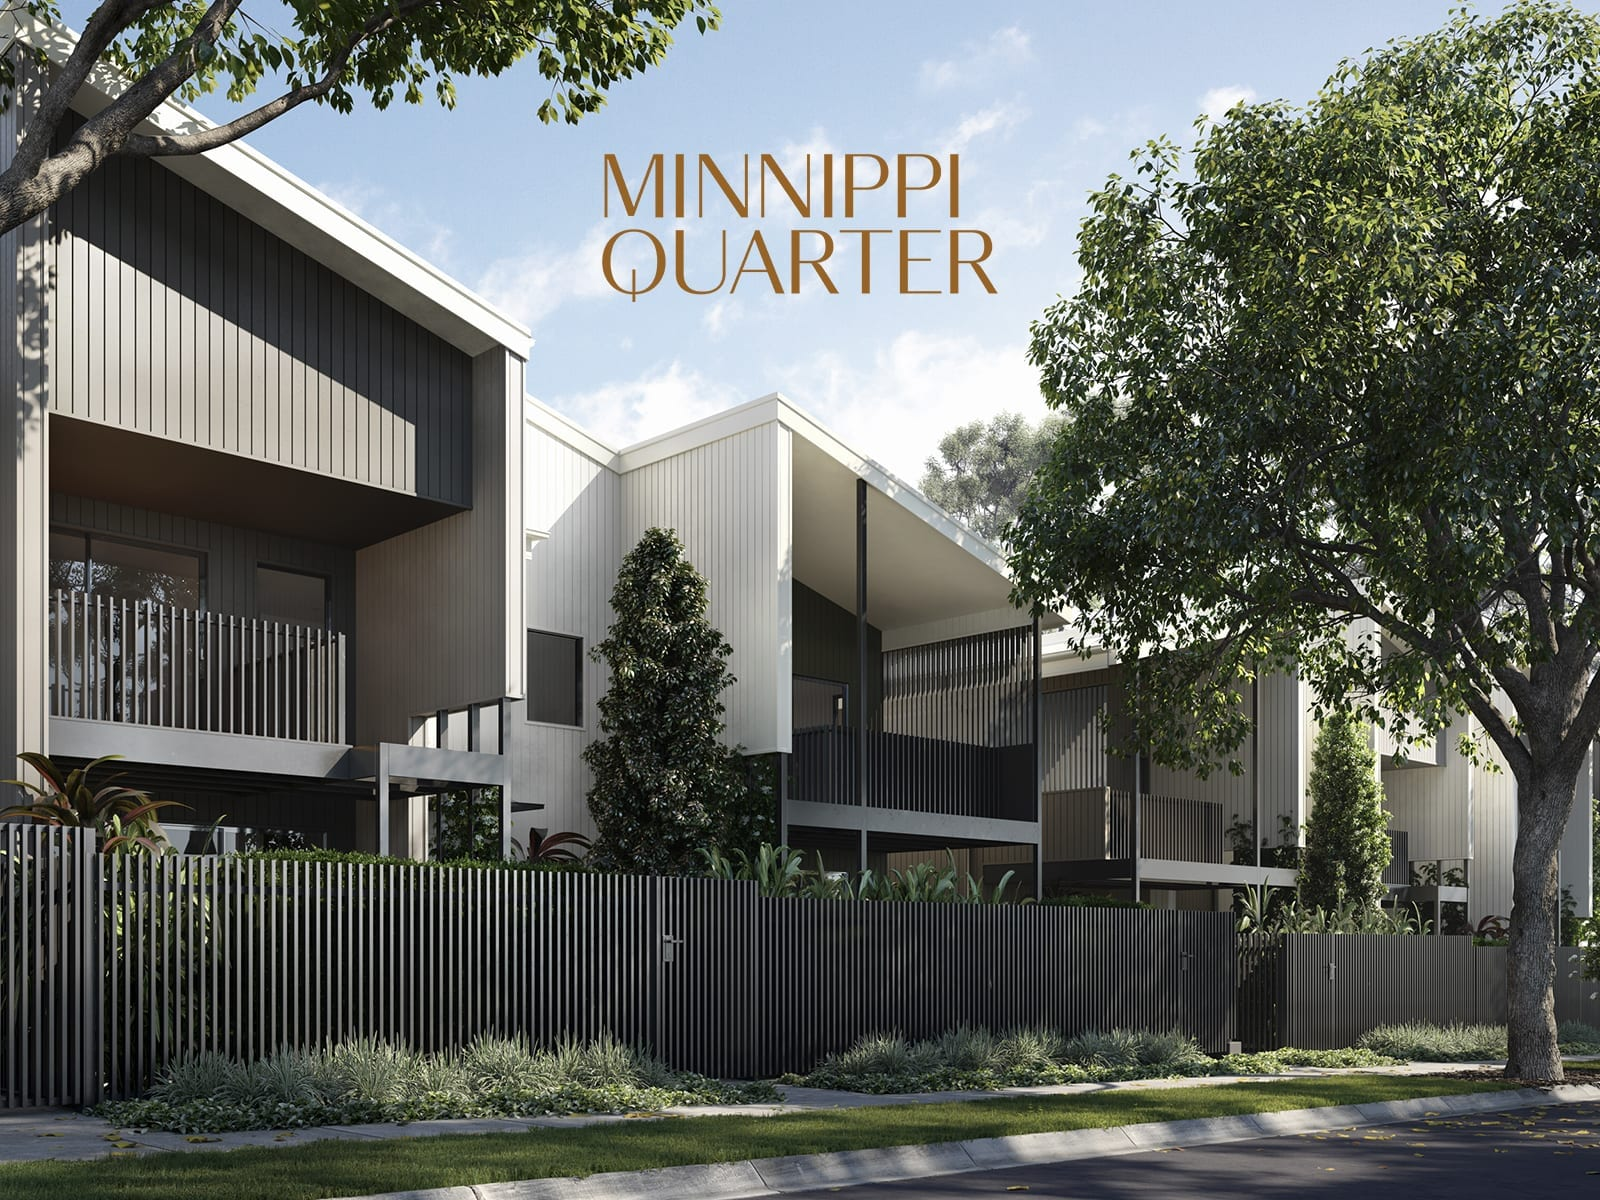 Minnippi Quarter